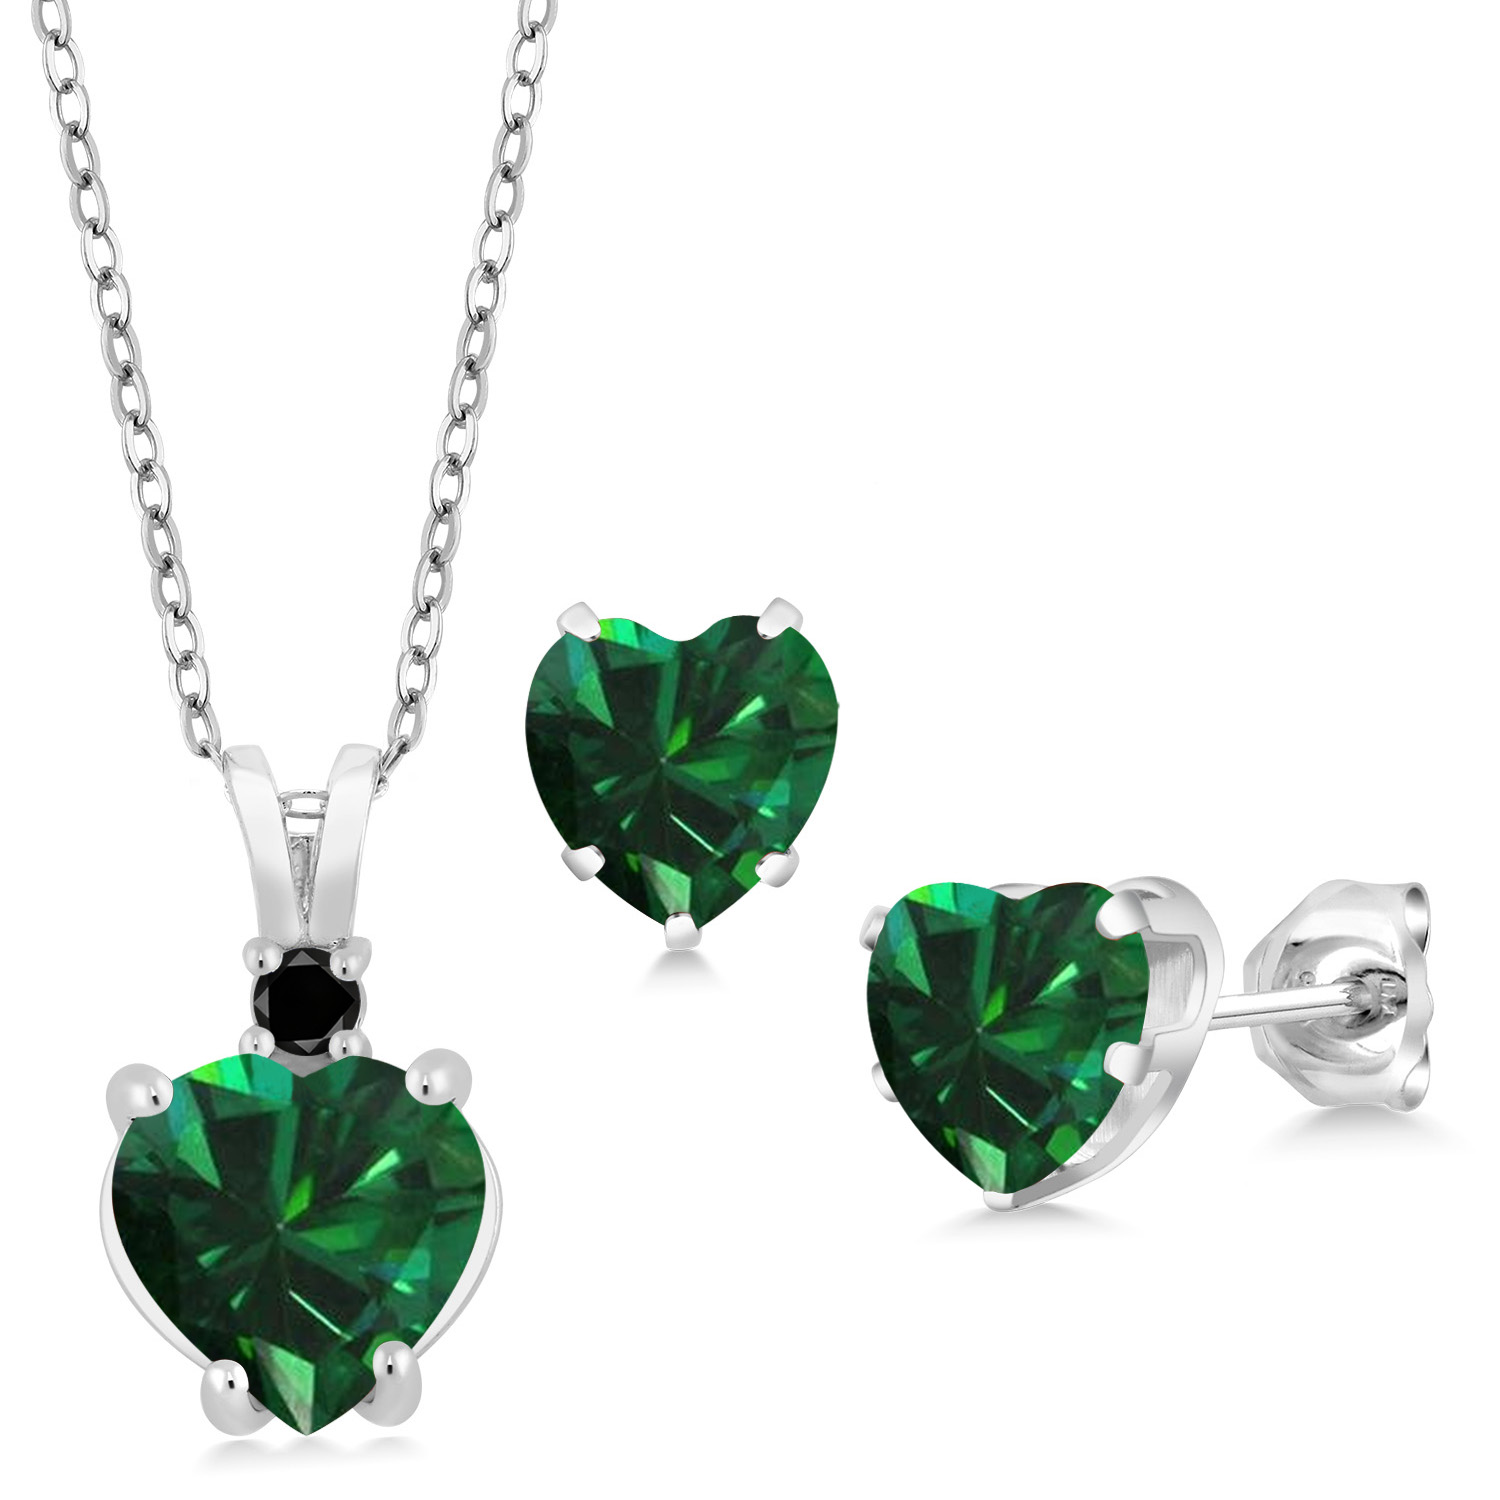 2 Ct Emerald 8mm Round Pendant .925 Sterling Silver